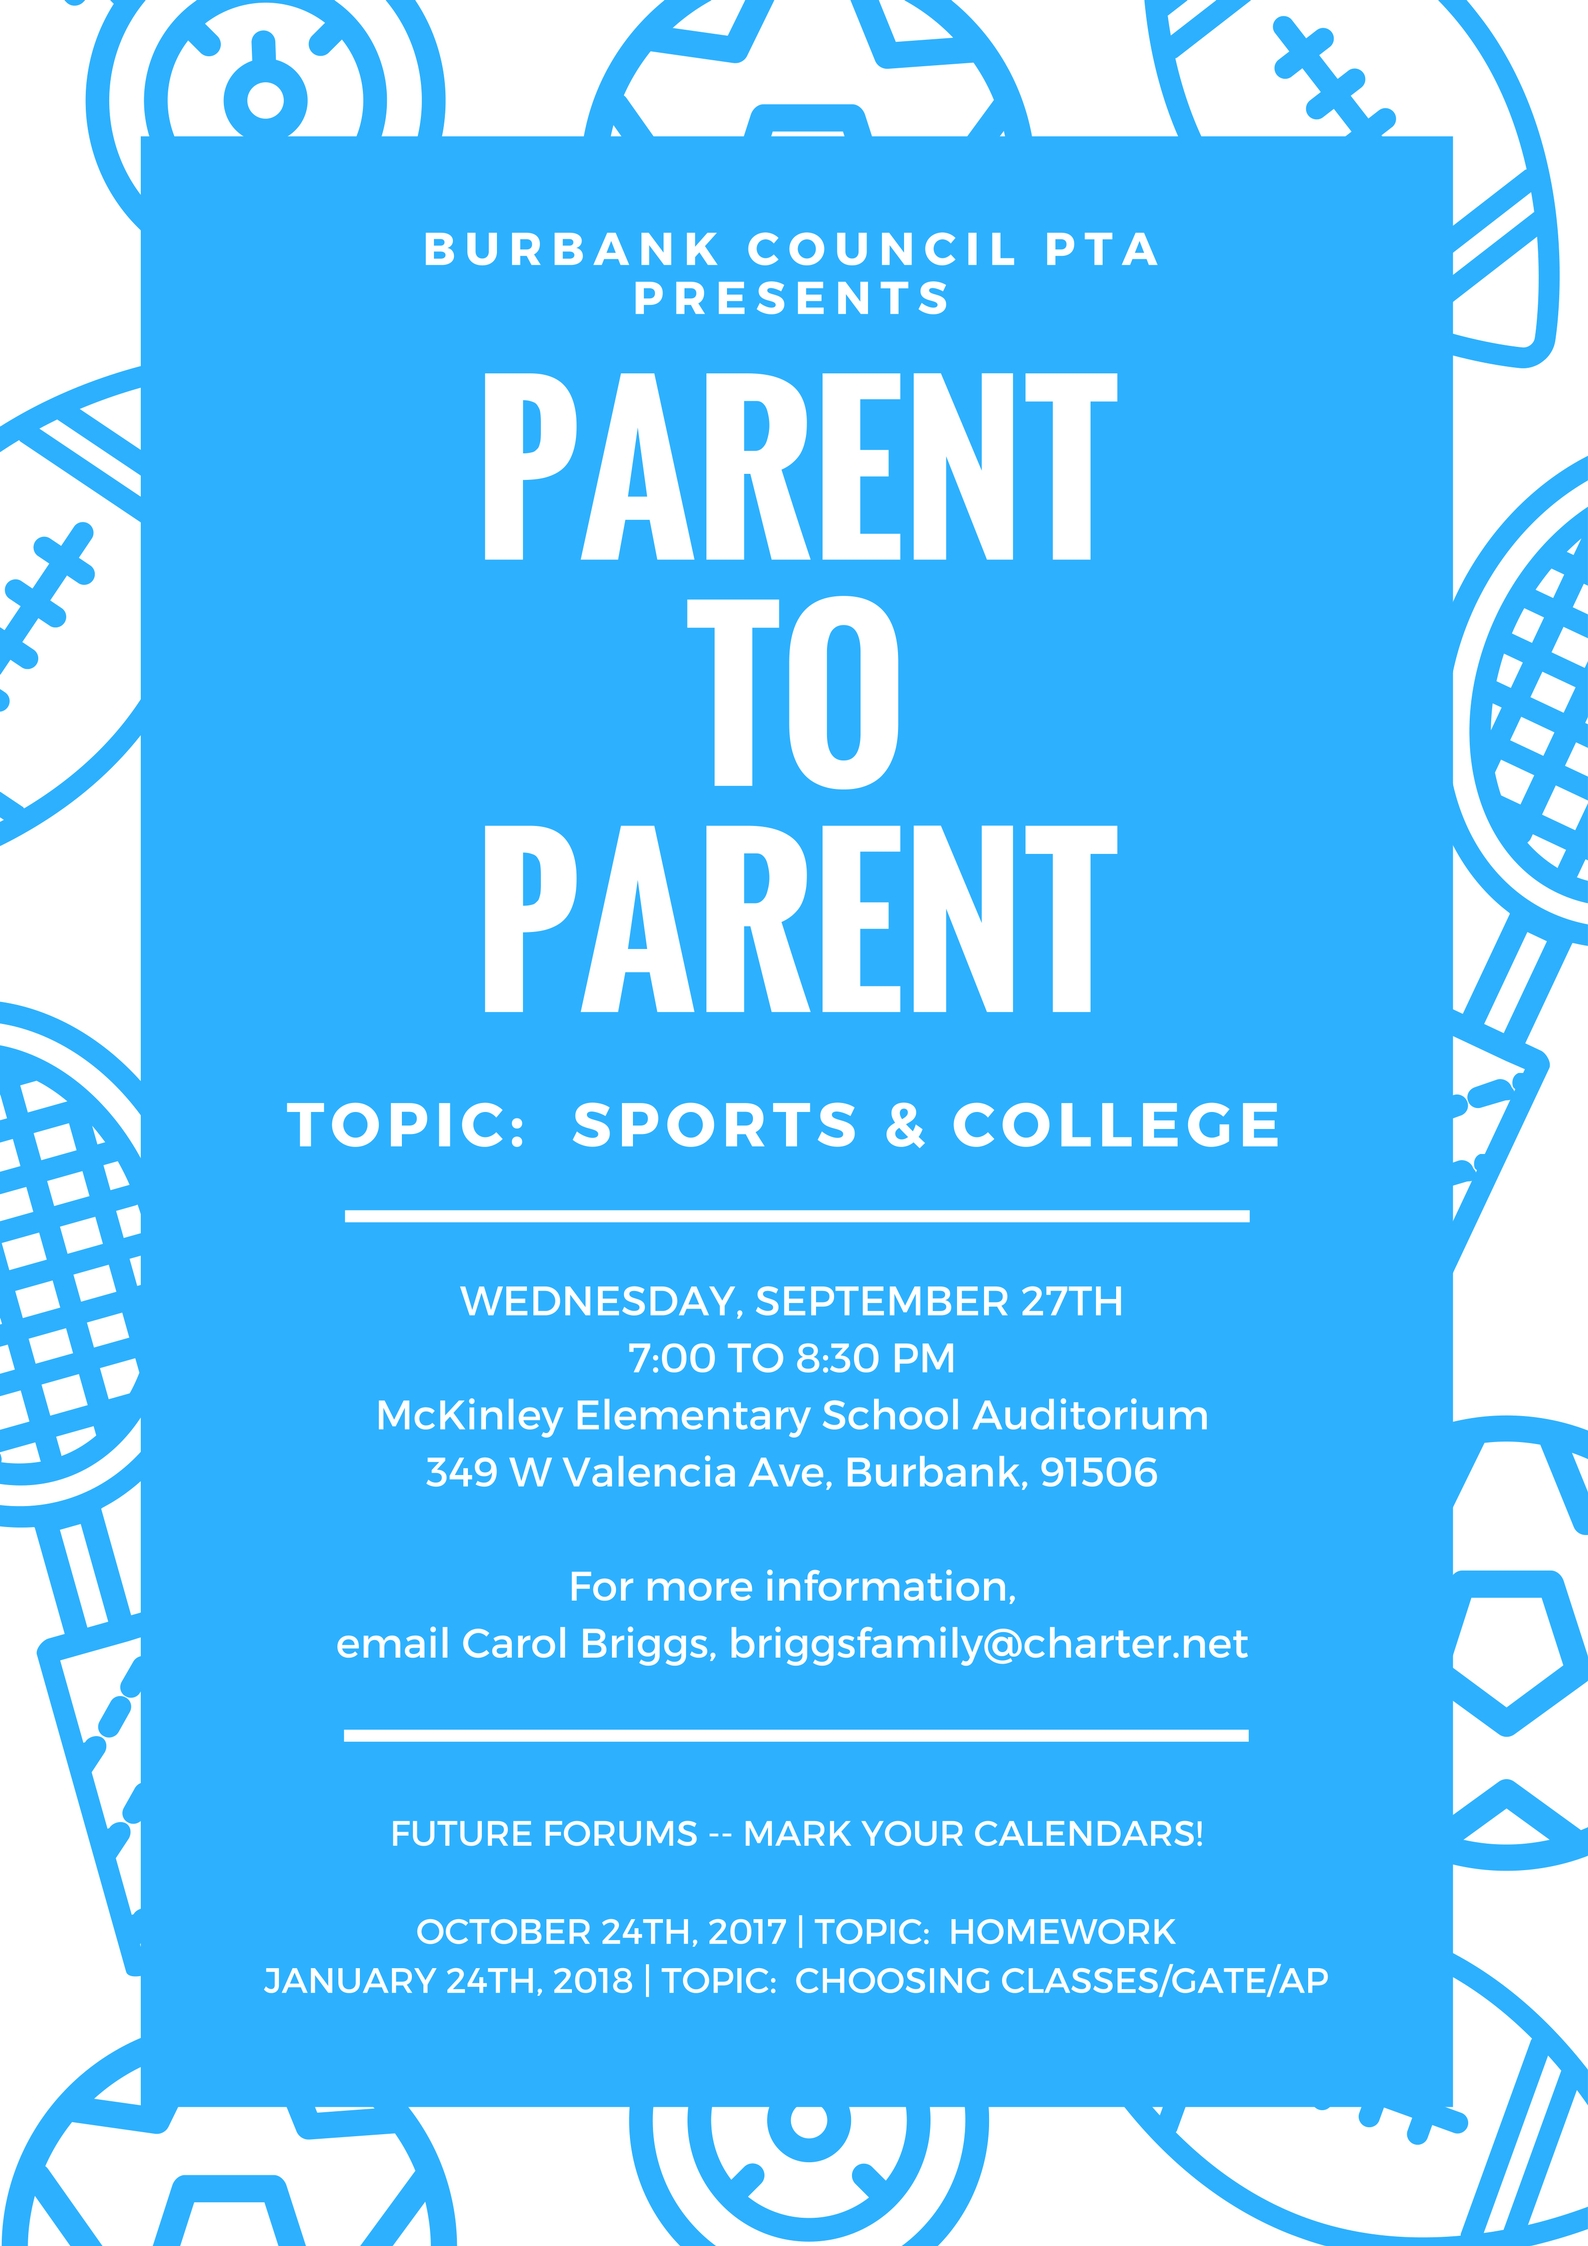 Join us for our first Parent to Parent Forum